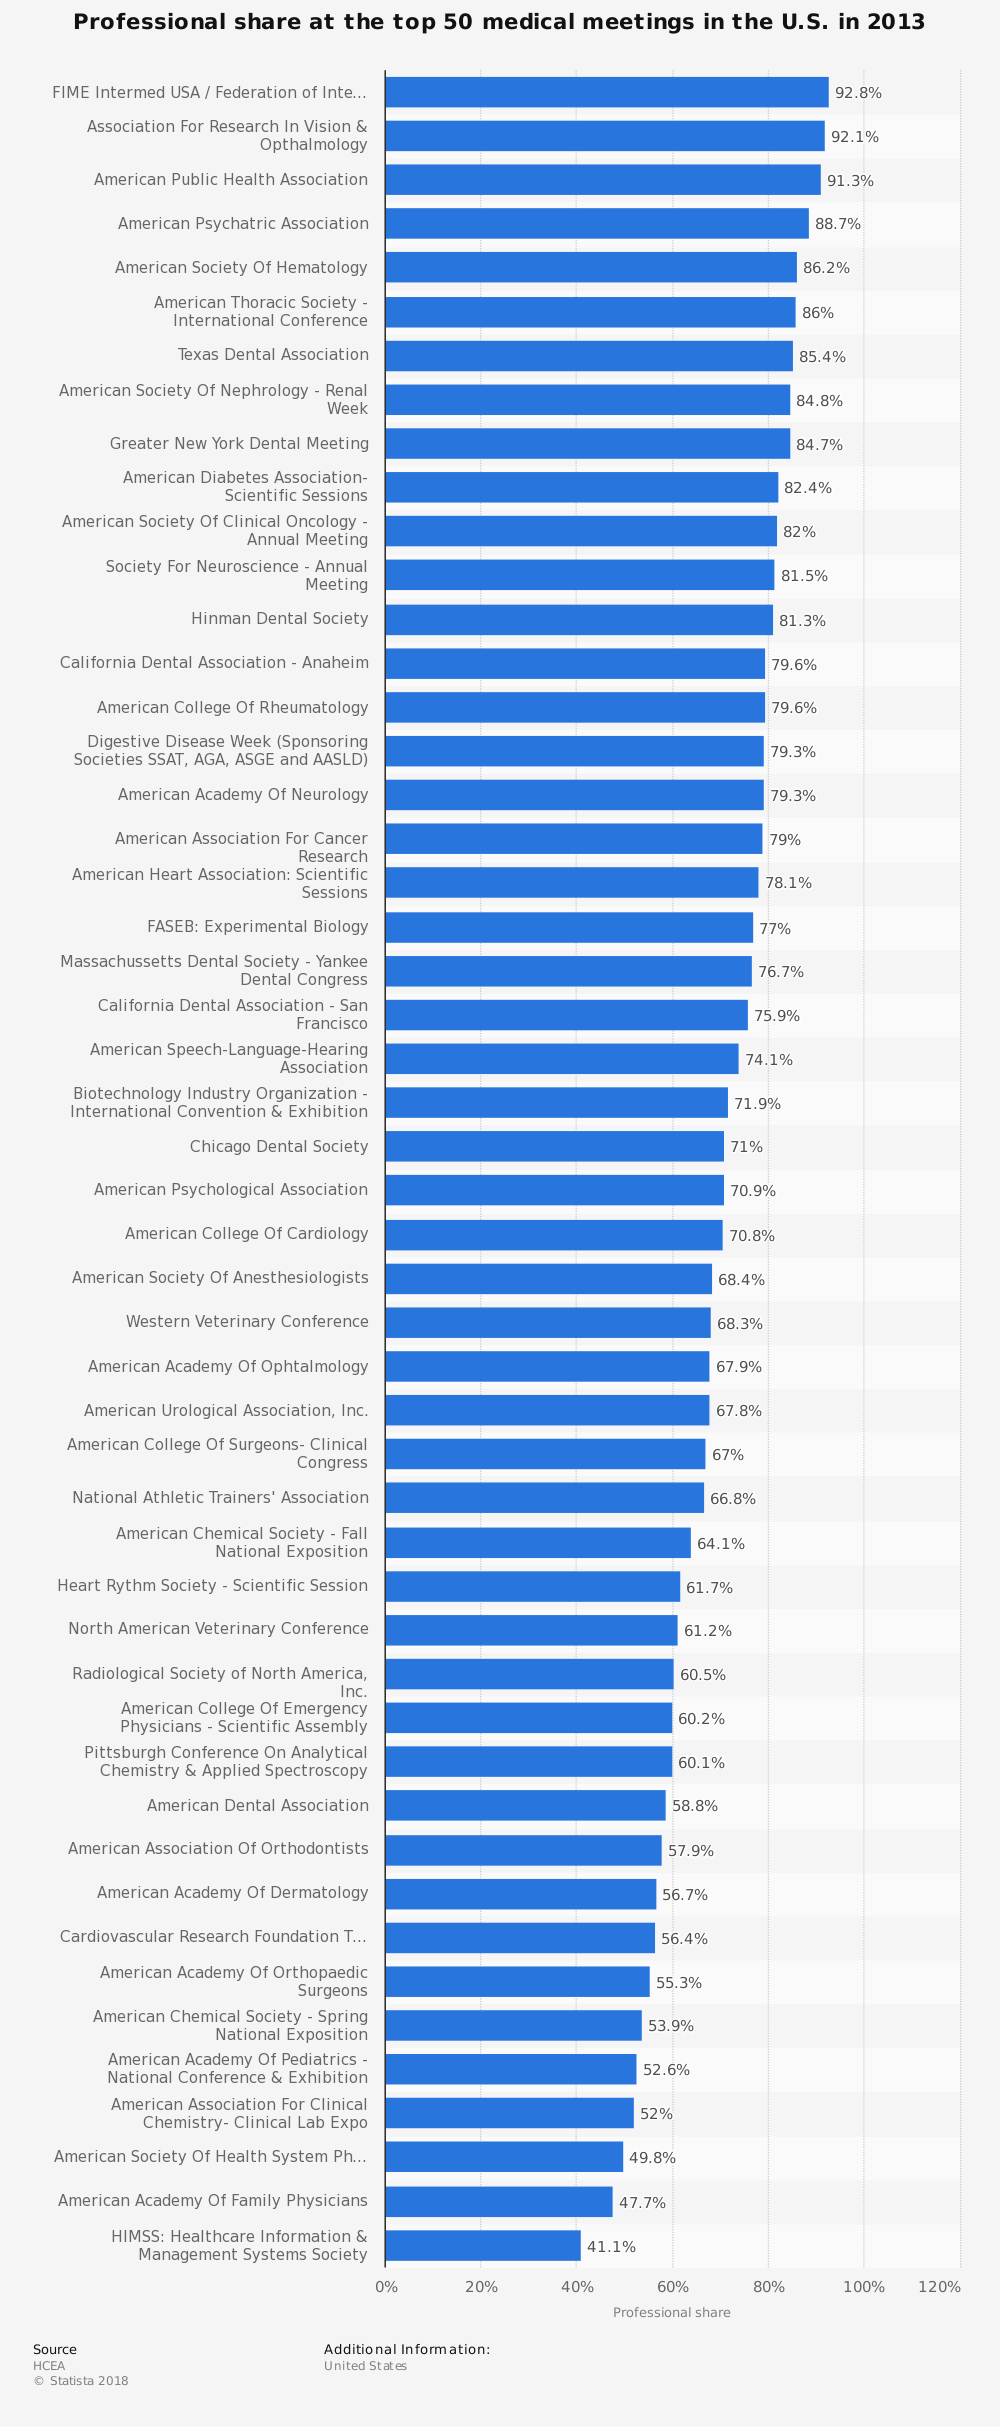 Statistic: Professional share at the top 50 medical meetings in the U.S. in 2013 | Statista